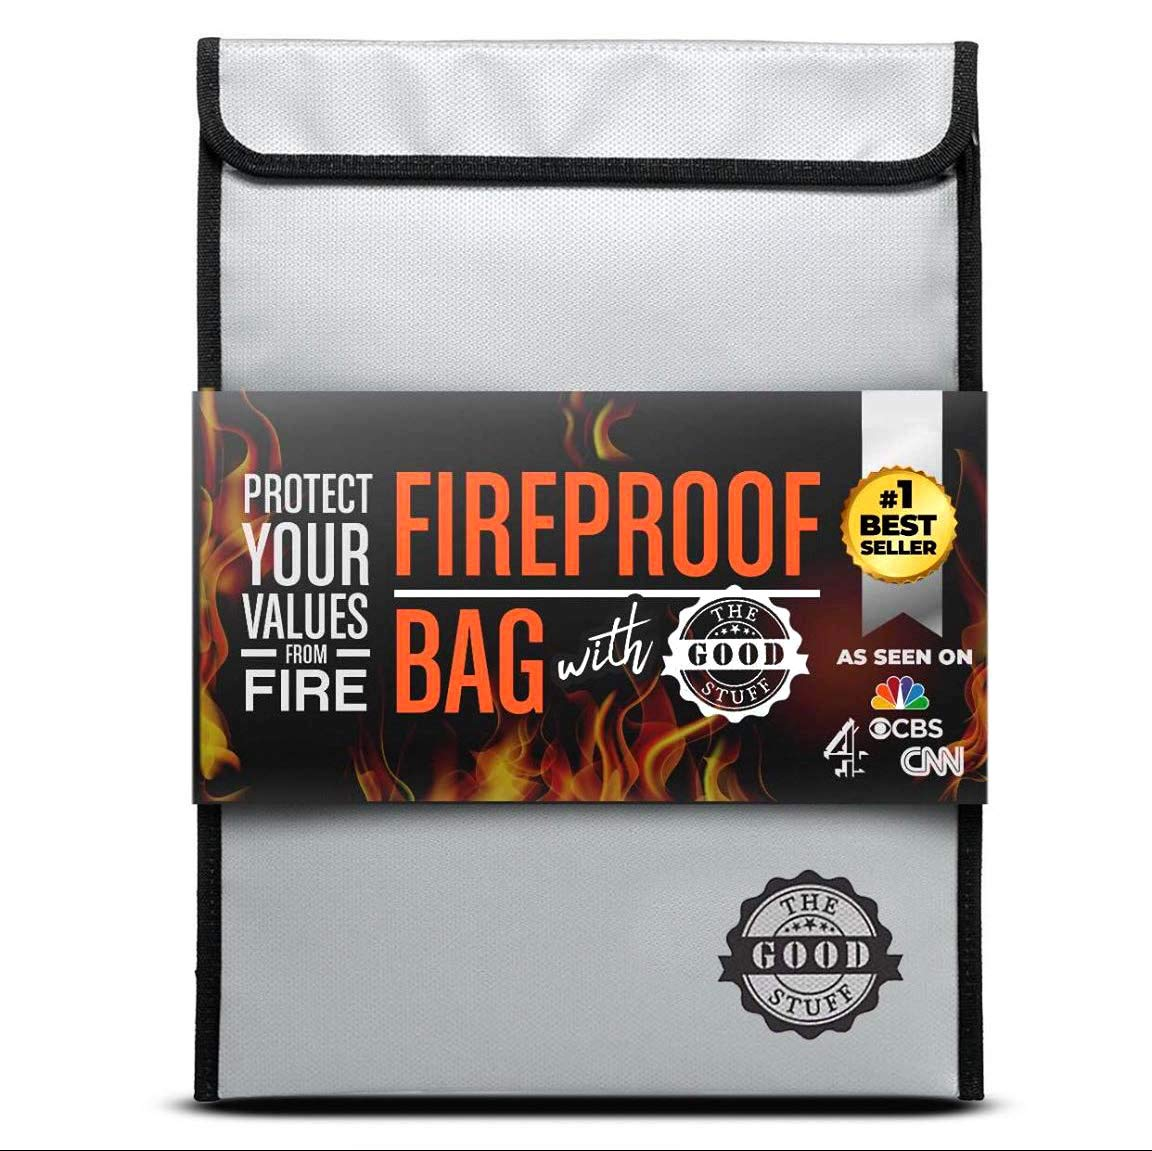 Fireproof Document Bags (2000℉), Protect Important Documents, Fireproof Bags (Extra Strength), Waterproof and Fireproof Document Bag, Fire Safe Bags, Keep your Documents Safe from Fire and Water by The Good Stuff